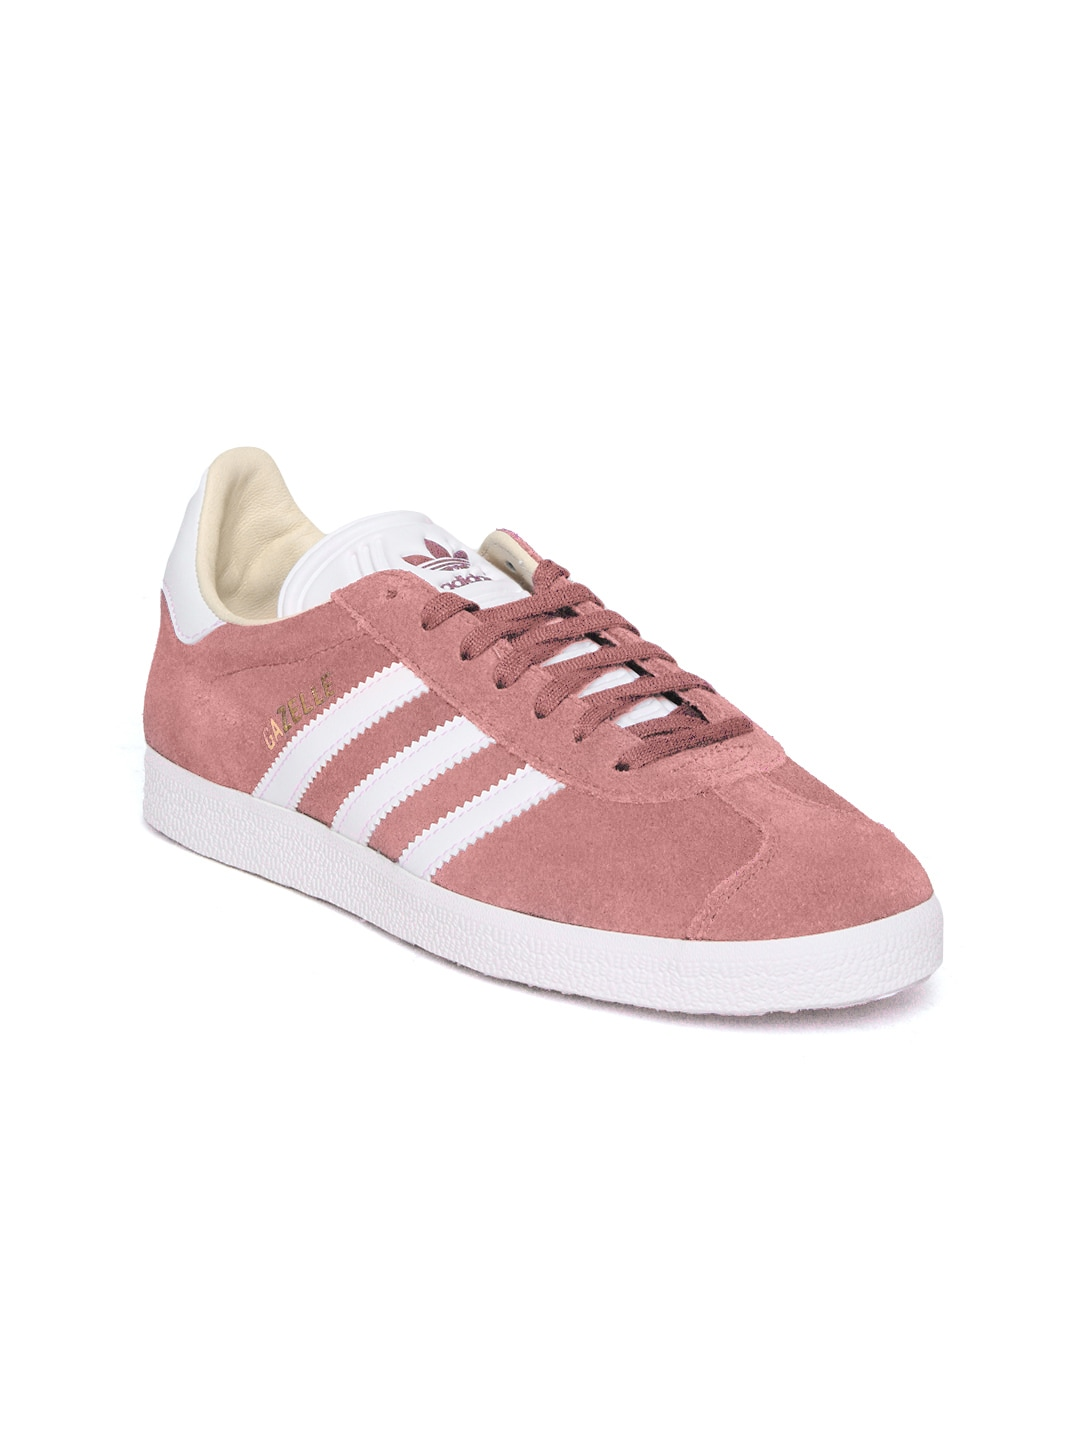 Buy new adidas takkies,up to 64% Discounts